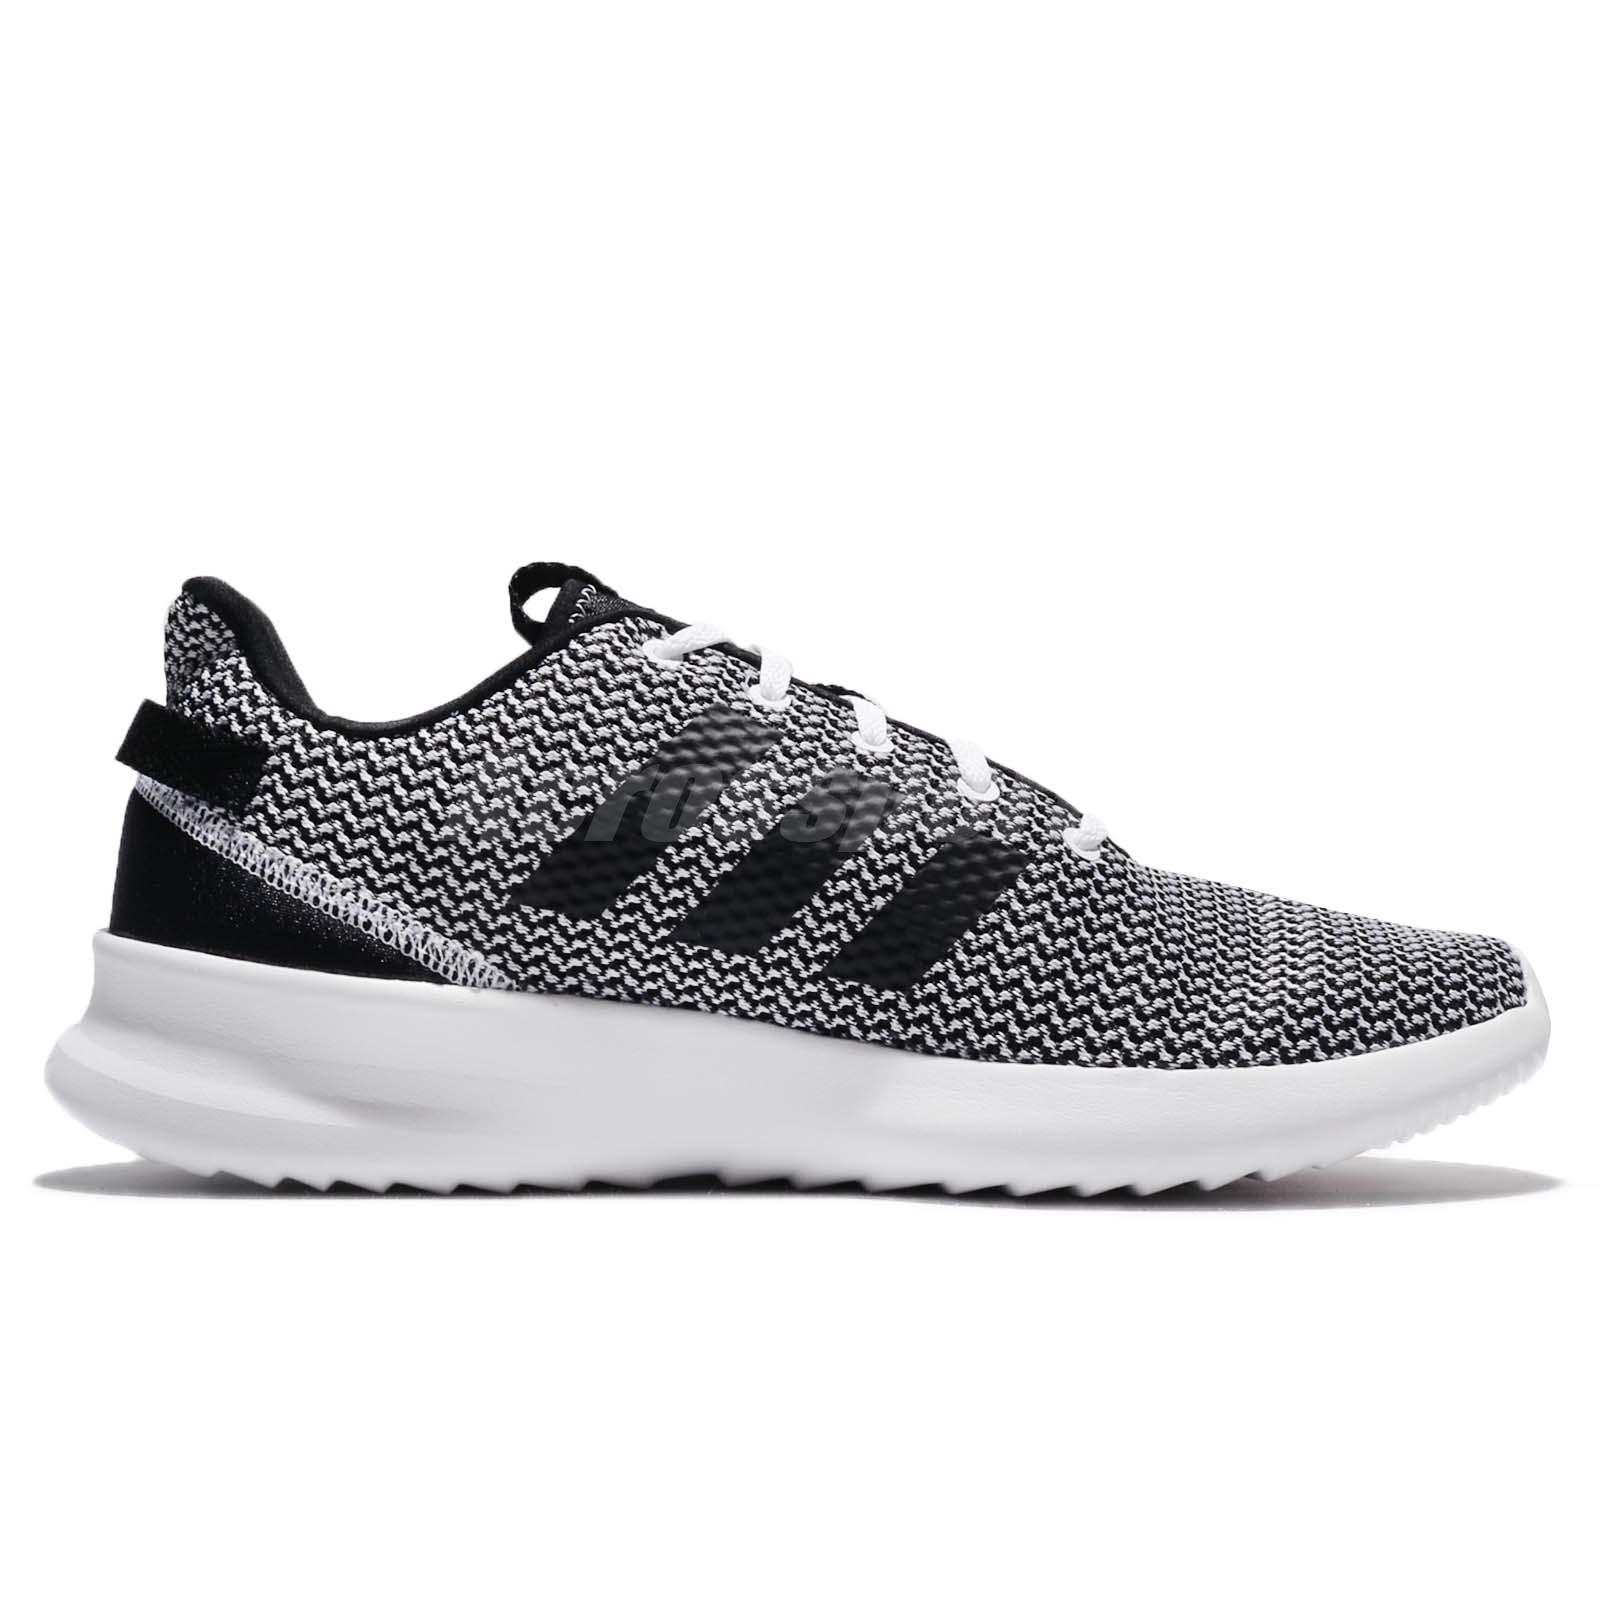 Details about adidas Neo CF Racer TR White Black Men Running Casual Shoes  Sneakers BC0060 081b2d5a3